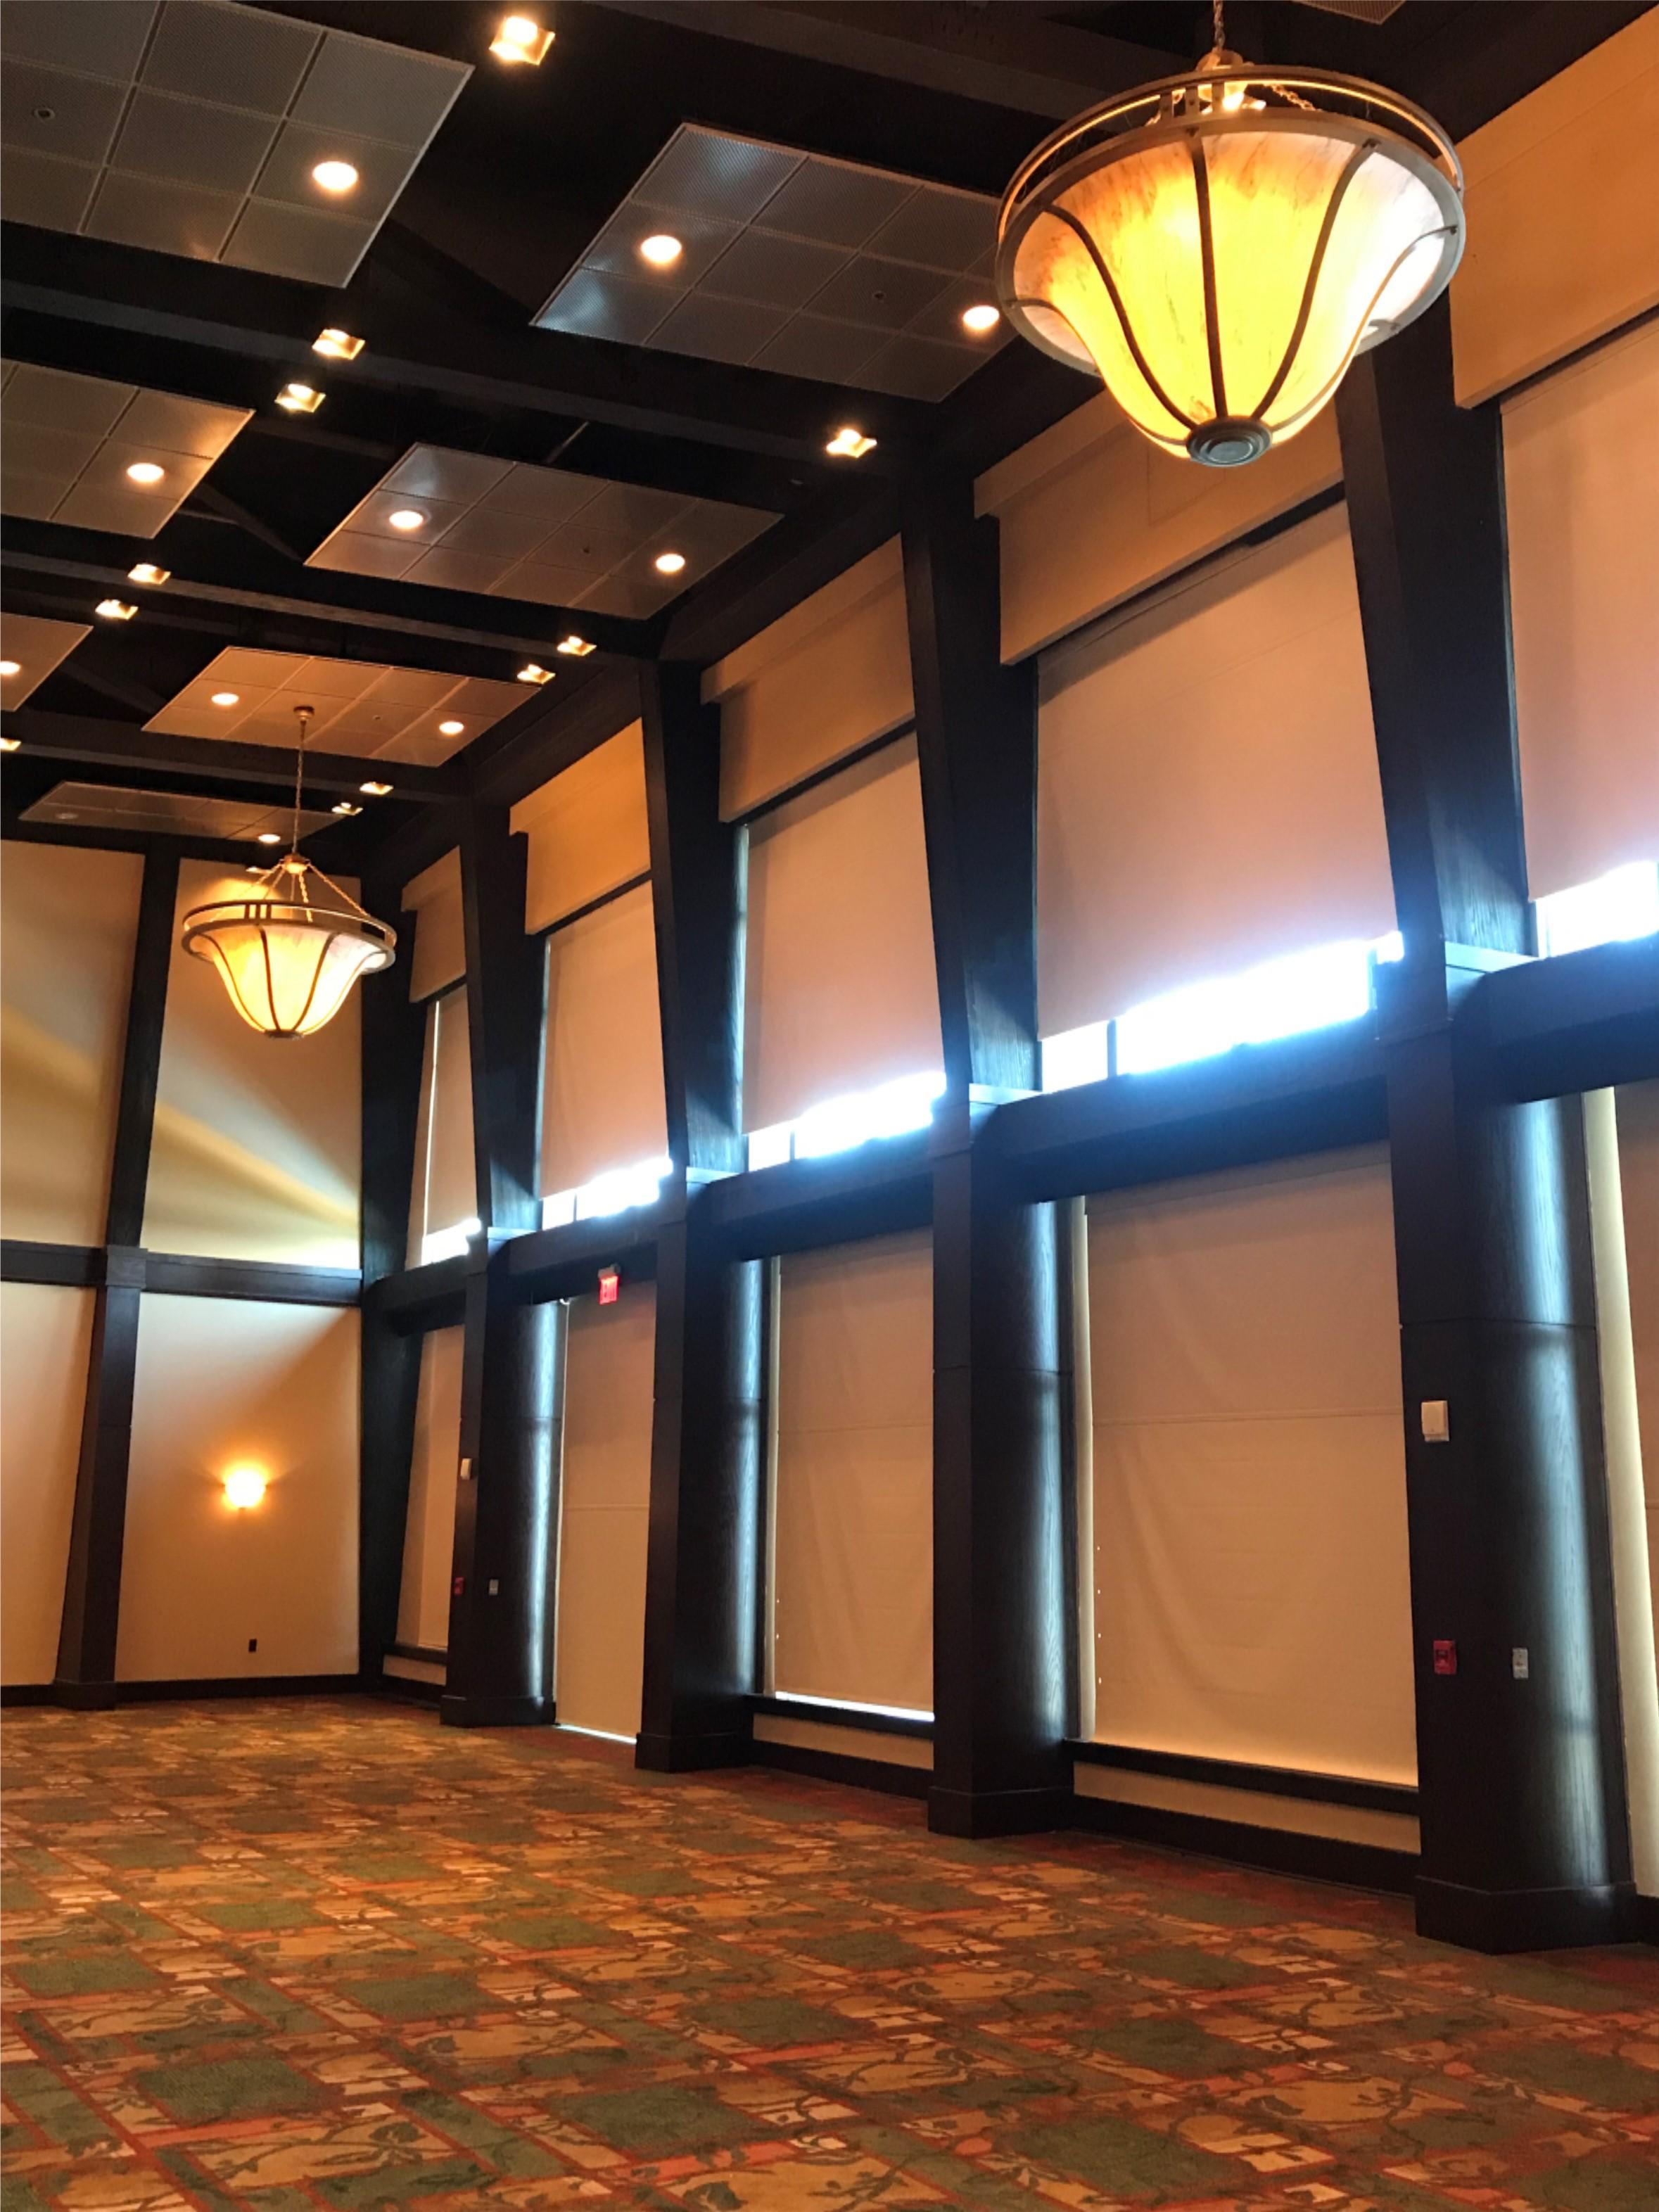 Inside ballroom blinds and columns